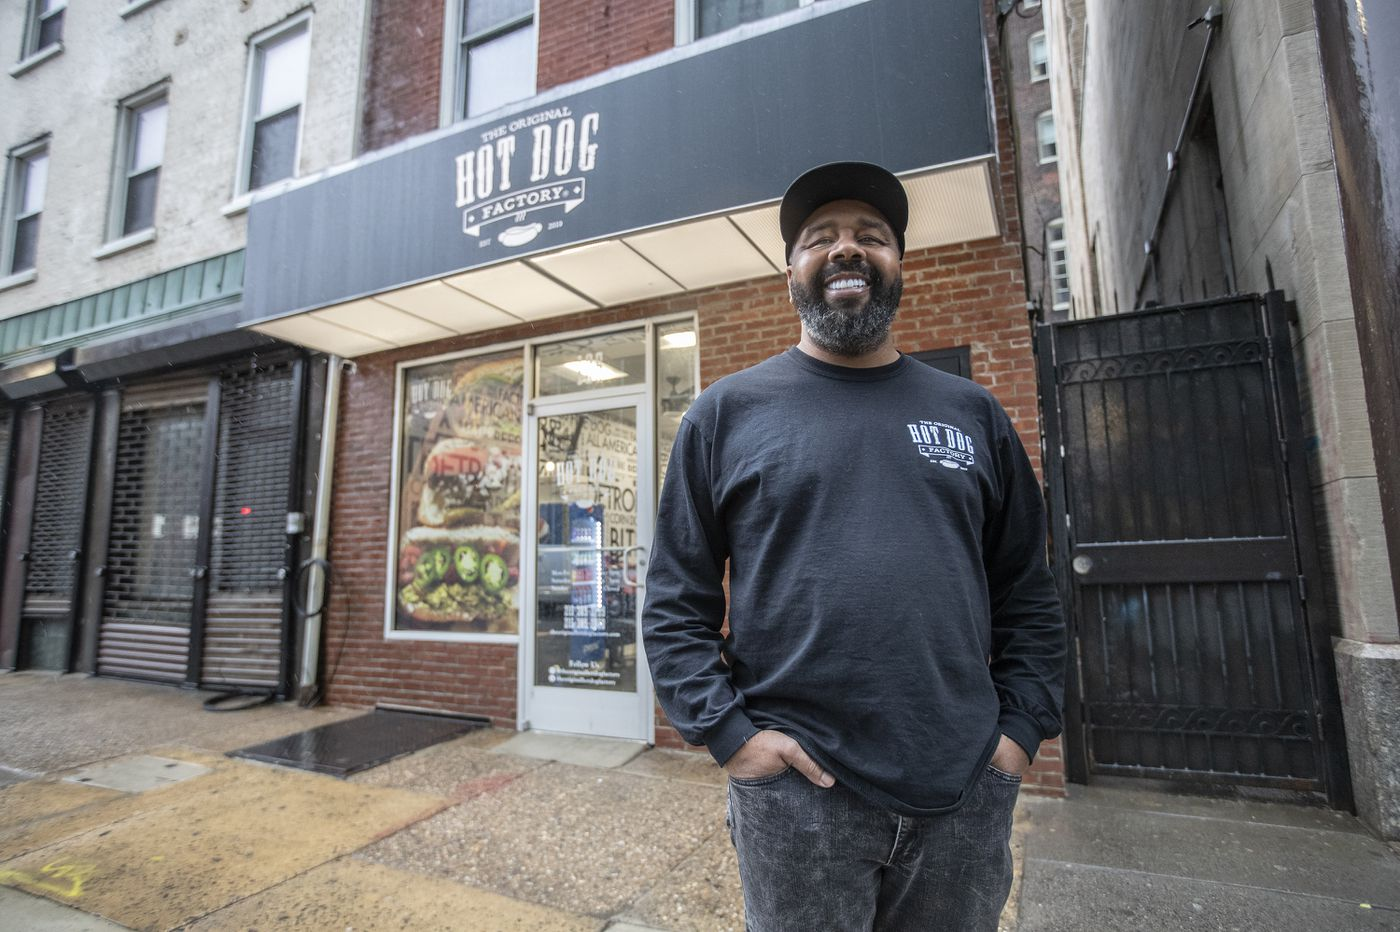 Plans for some new Philly restaurants are on hold as owners weigh the impact of the shutdown